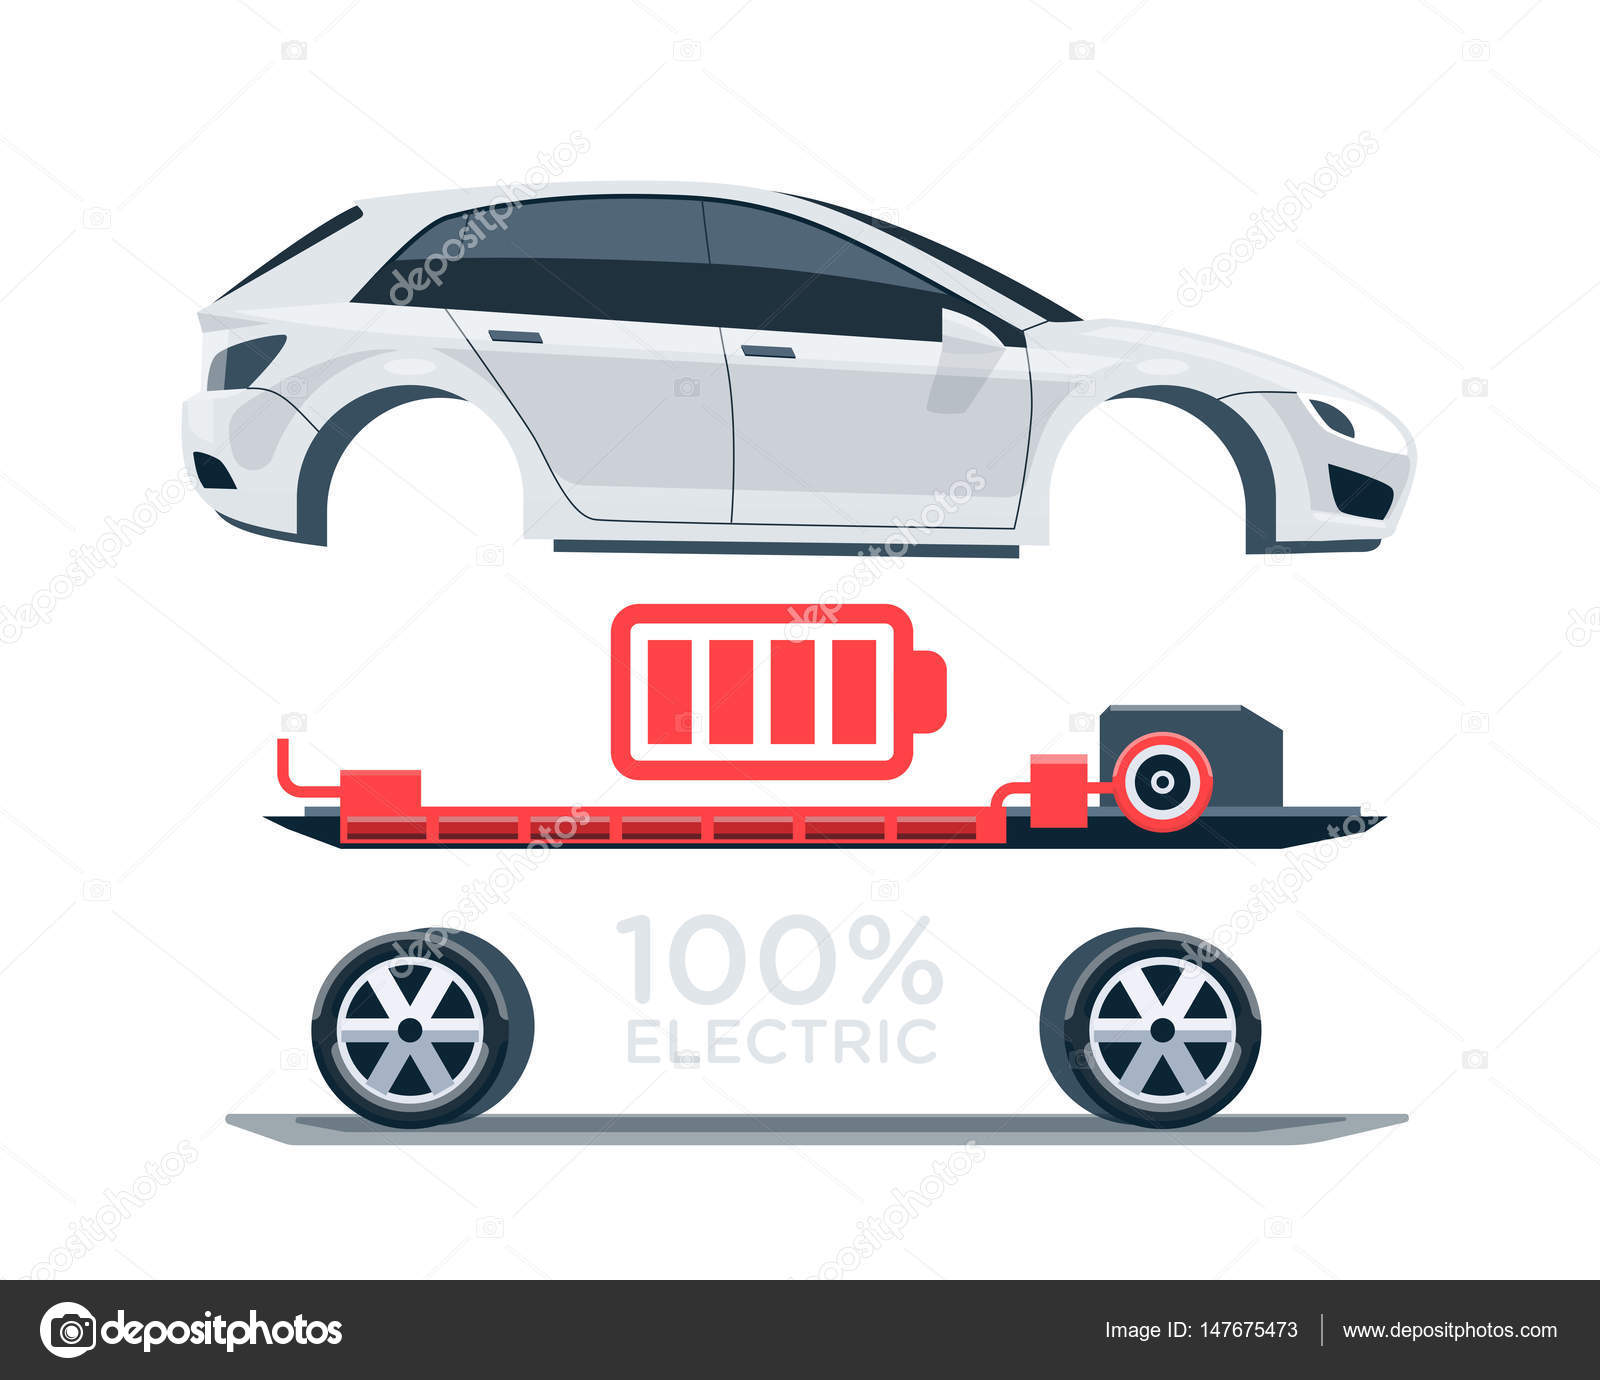 hight resolution of electric car scheme simplified diagram of components stock vector